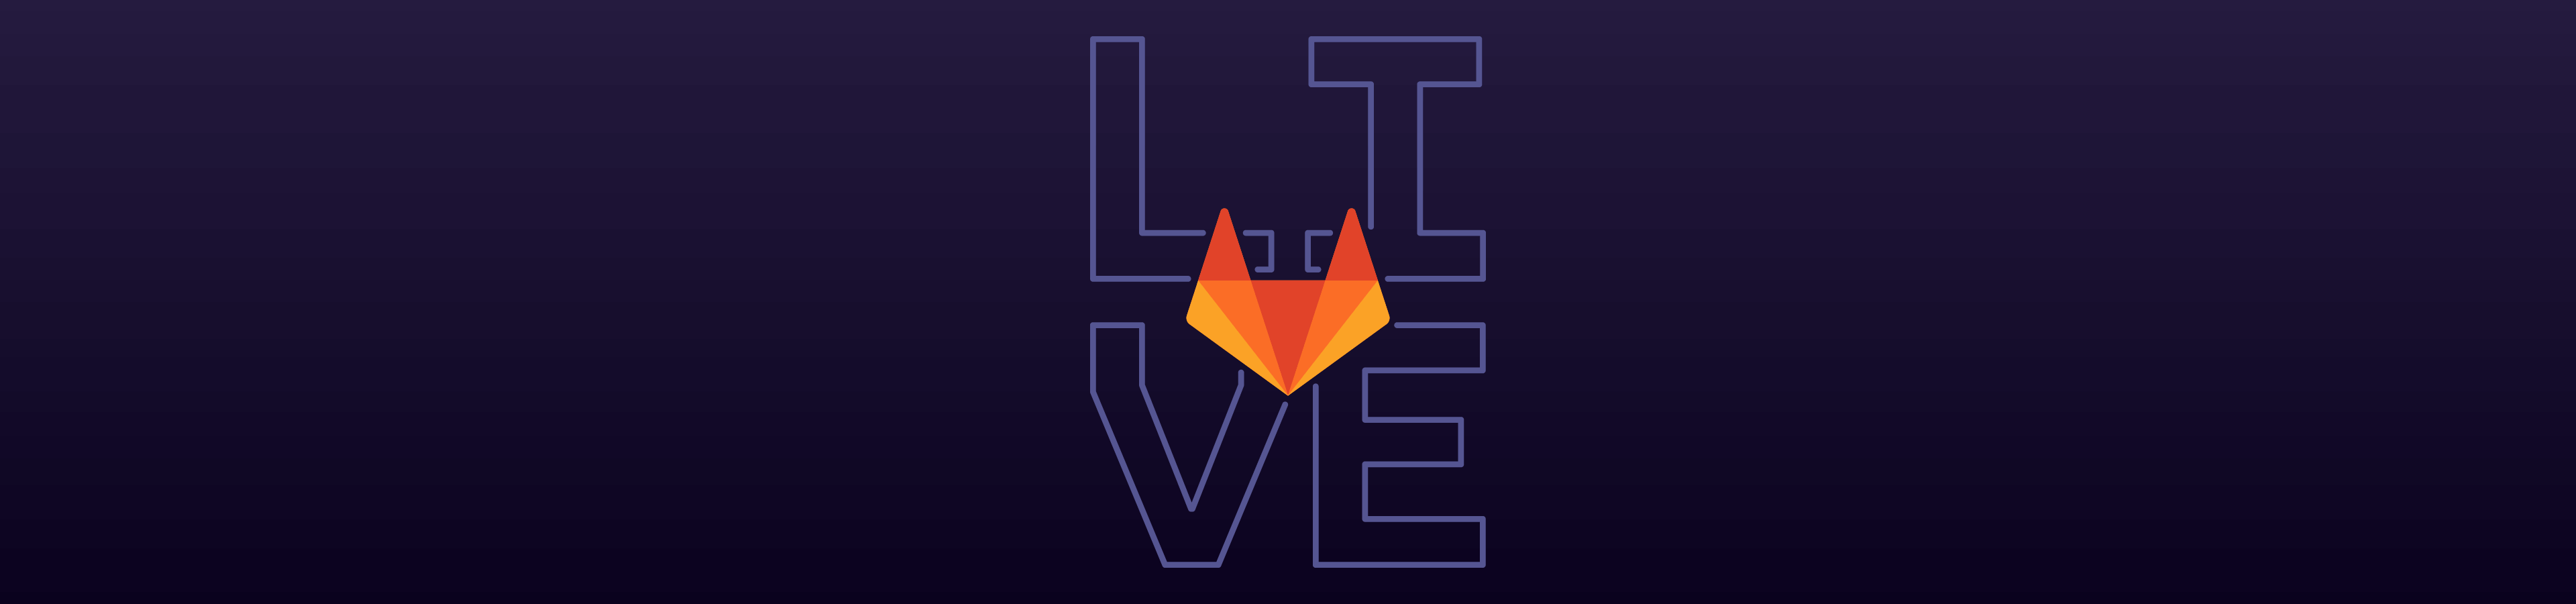 Watch GitLab raises 100 million at 1.1 billion valuation in wake of MicrosoftGitHub acquisition video